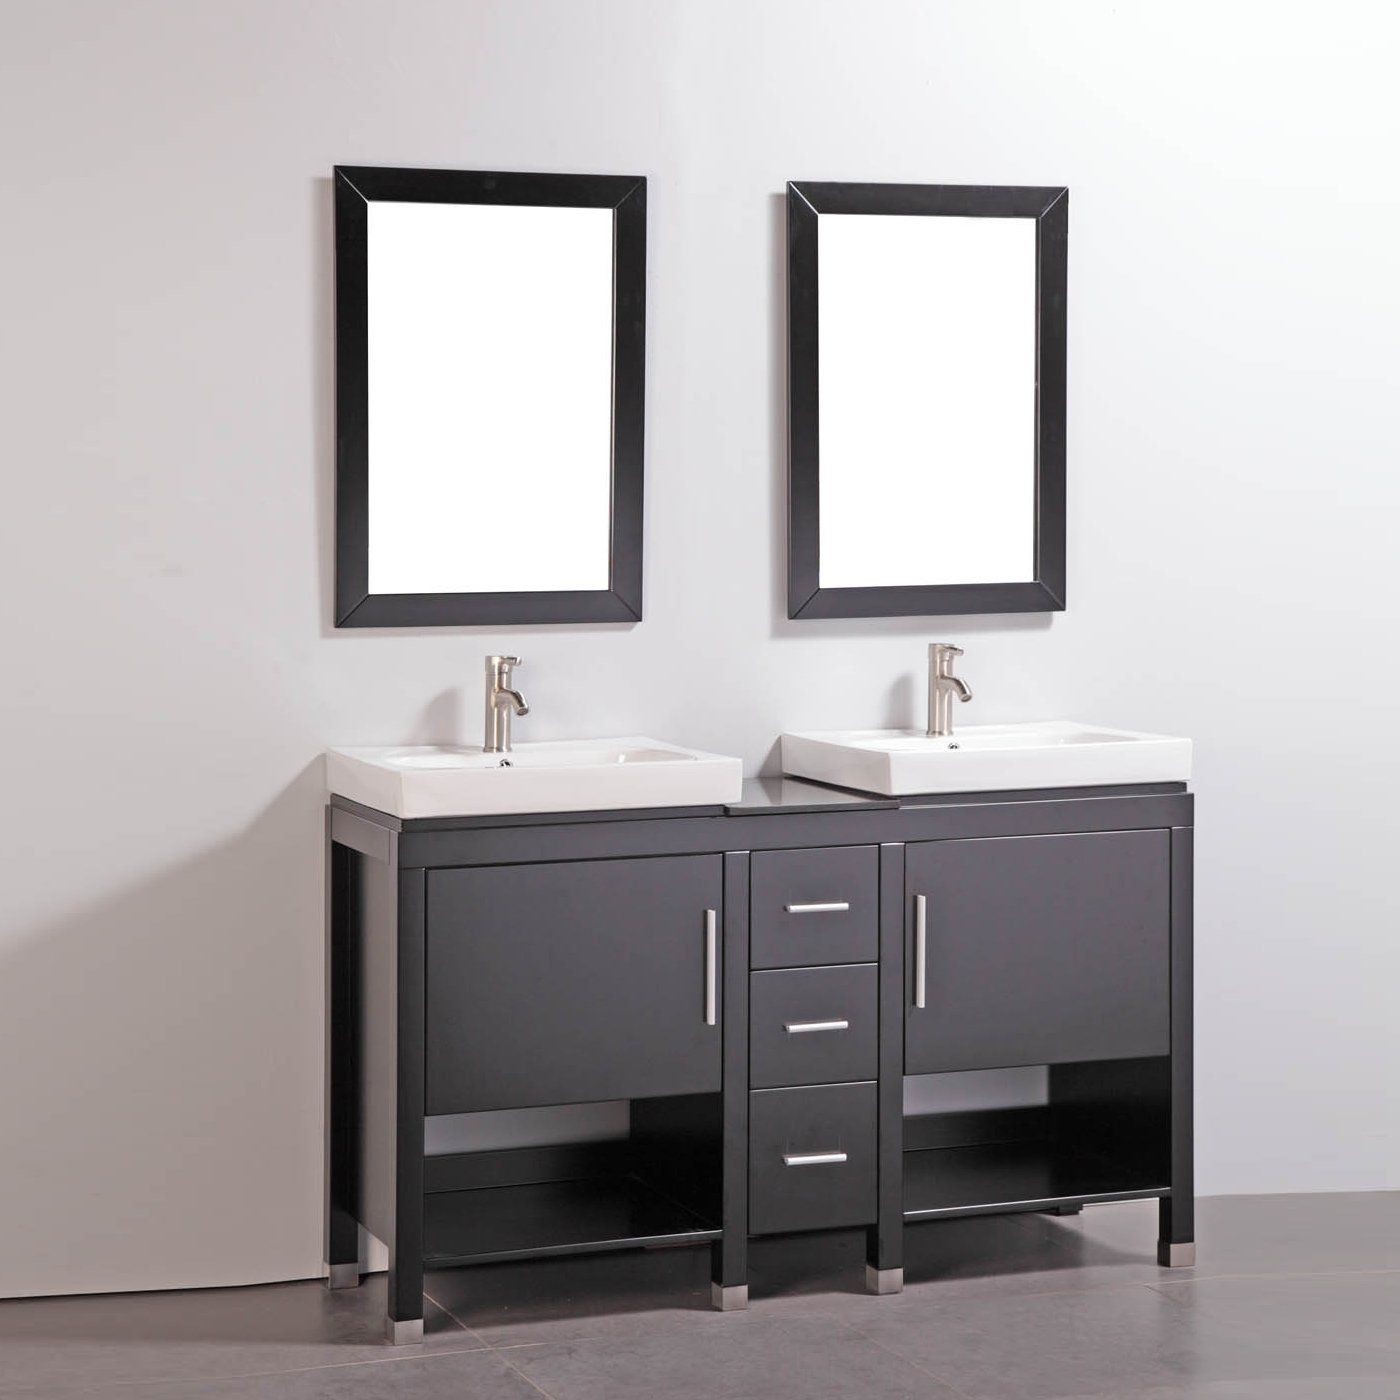 shop legion furniture wa6960 60 in solid wood double bathroom vanity rh pinterest fr 28 Bathroom Vanity with Sink 48 Bathroom Vanity with Sink